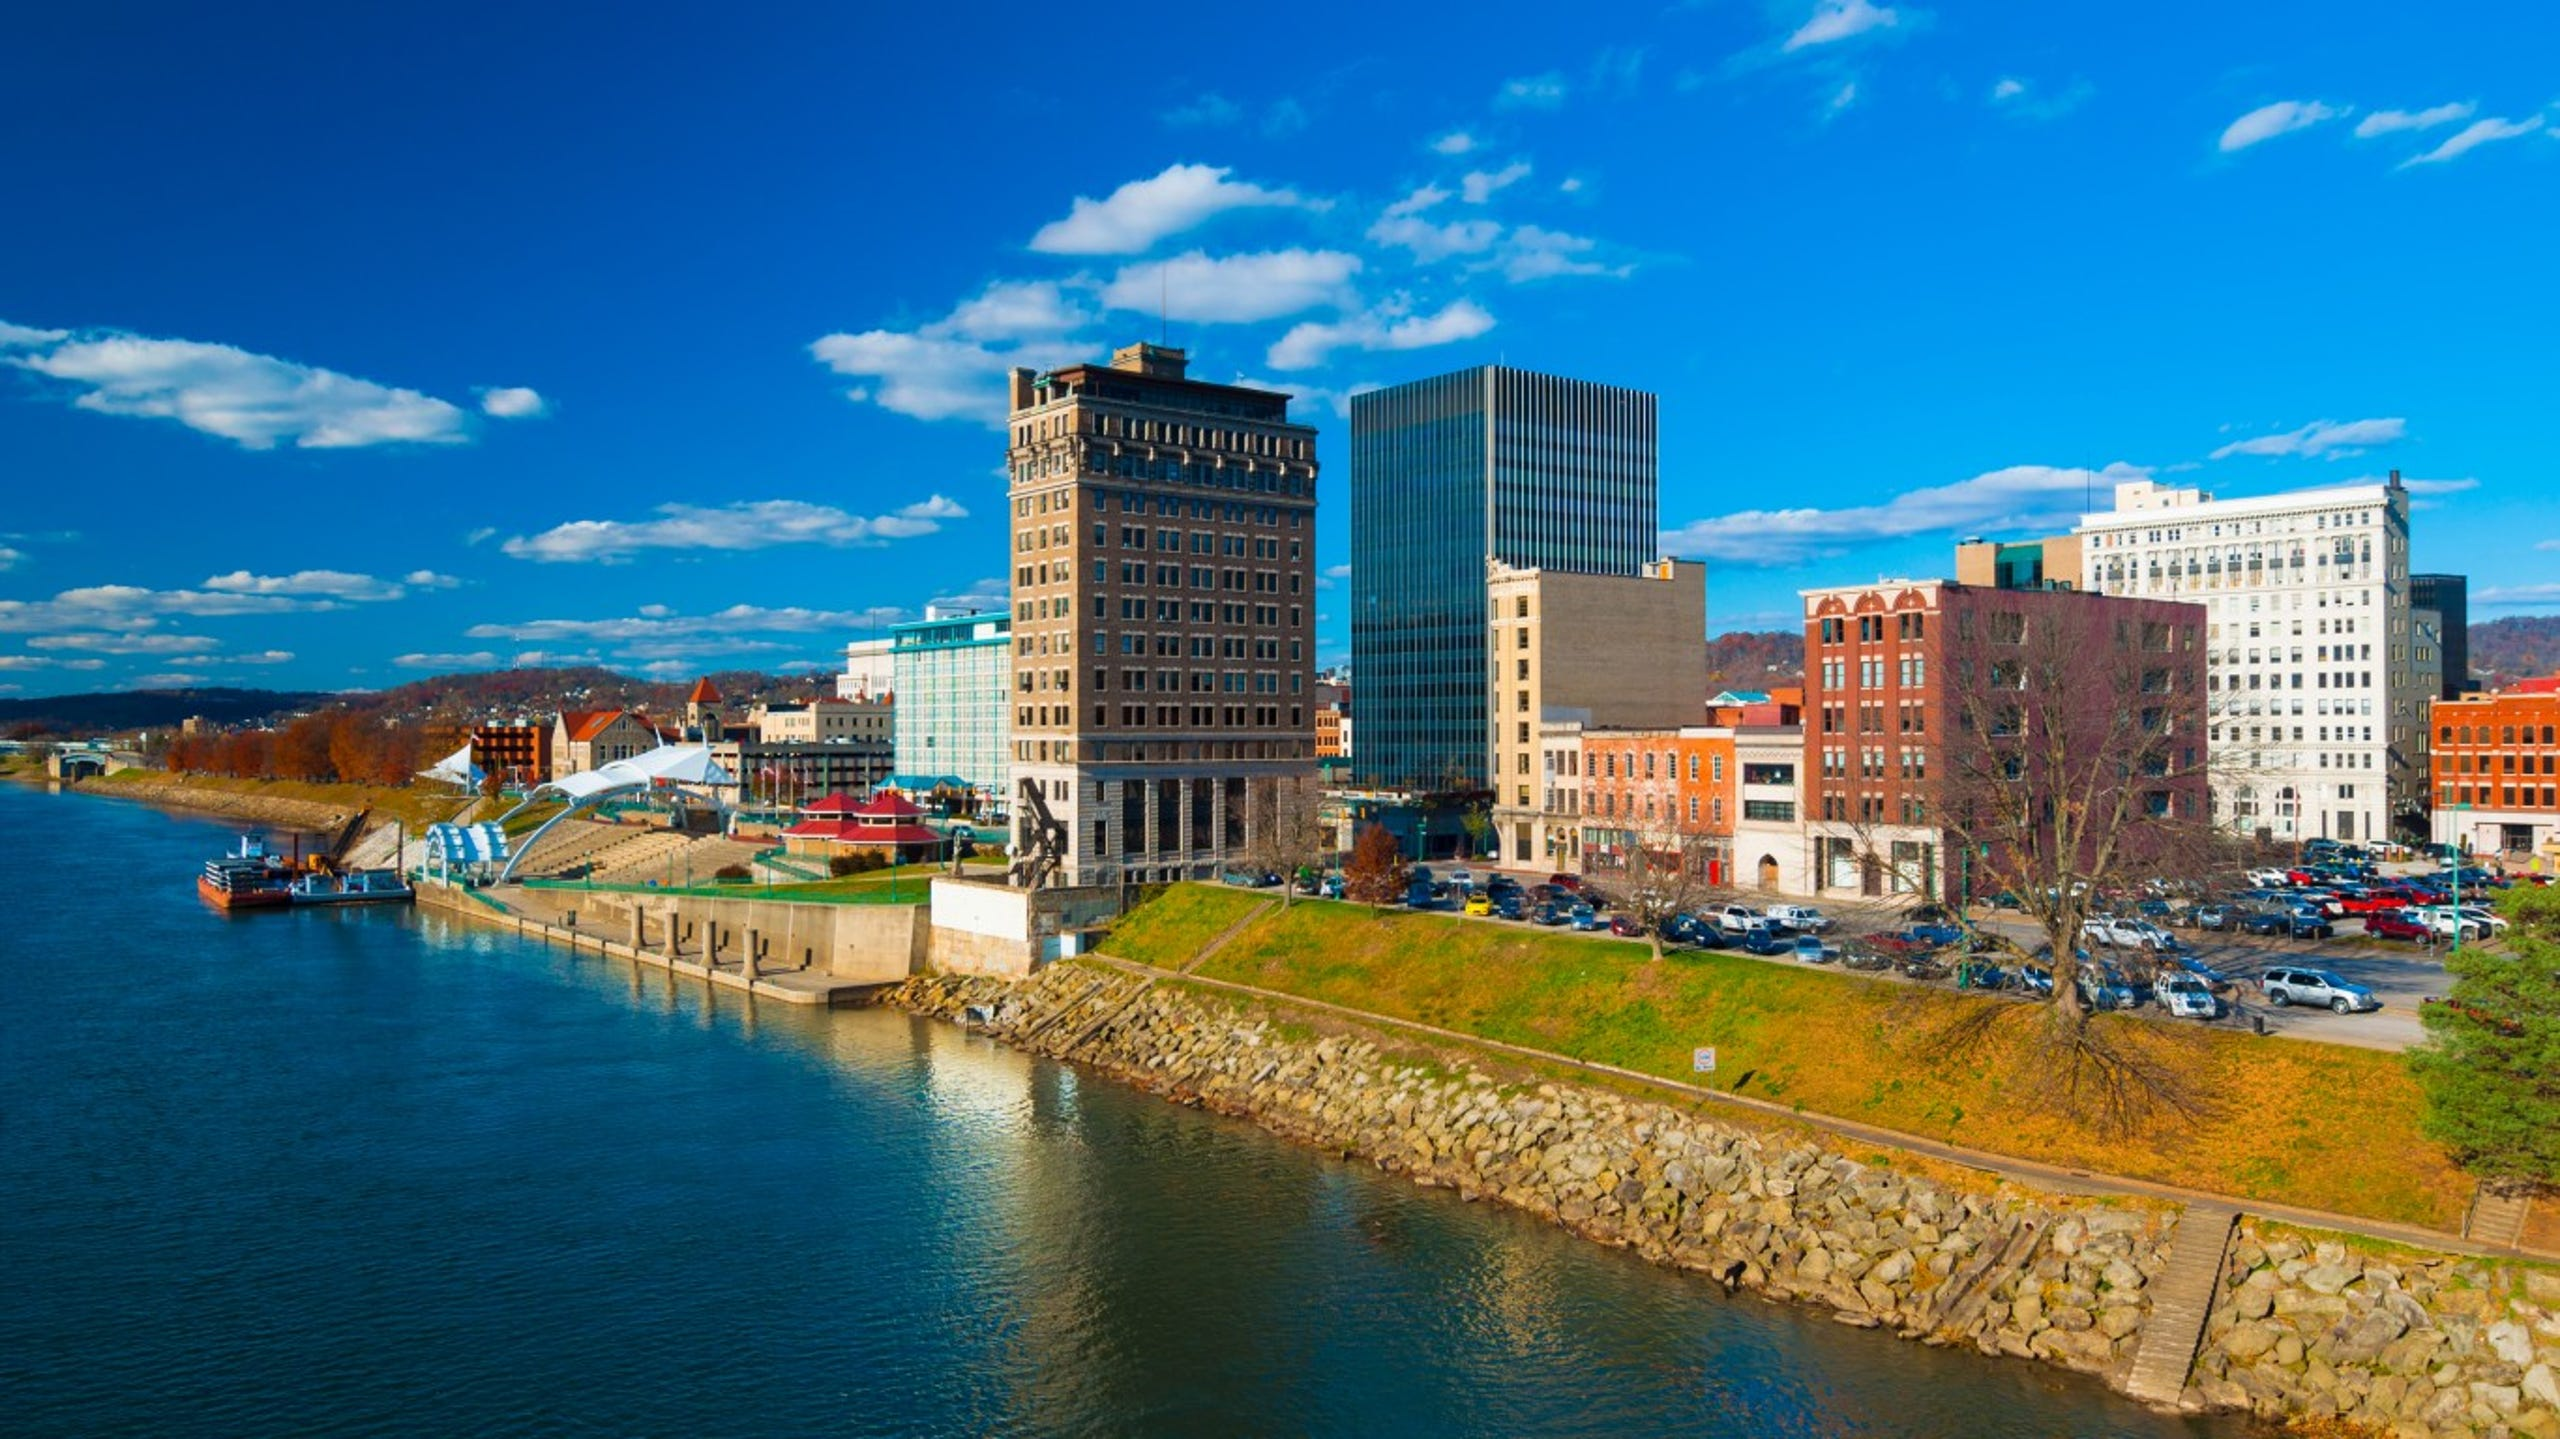 <strong>7. Charleston, West Virginia</strong><br /> <strong>&bull; Preschool enrollment:</strong> 24.3% (lowest 10%)<br /> <strong>&bull; High school graduation rate:</strong> 83.9%<br /> <strong>&bull; Pop. with access to areas for exercise:</strong> 62.7% (lowest 10%)<br /> <strong>&bull; Property crime rate:</strong> N/A